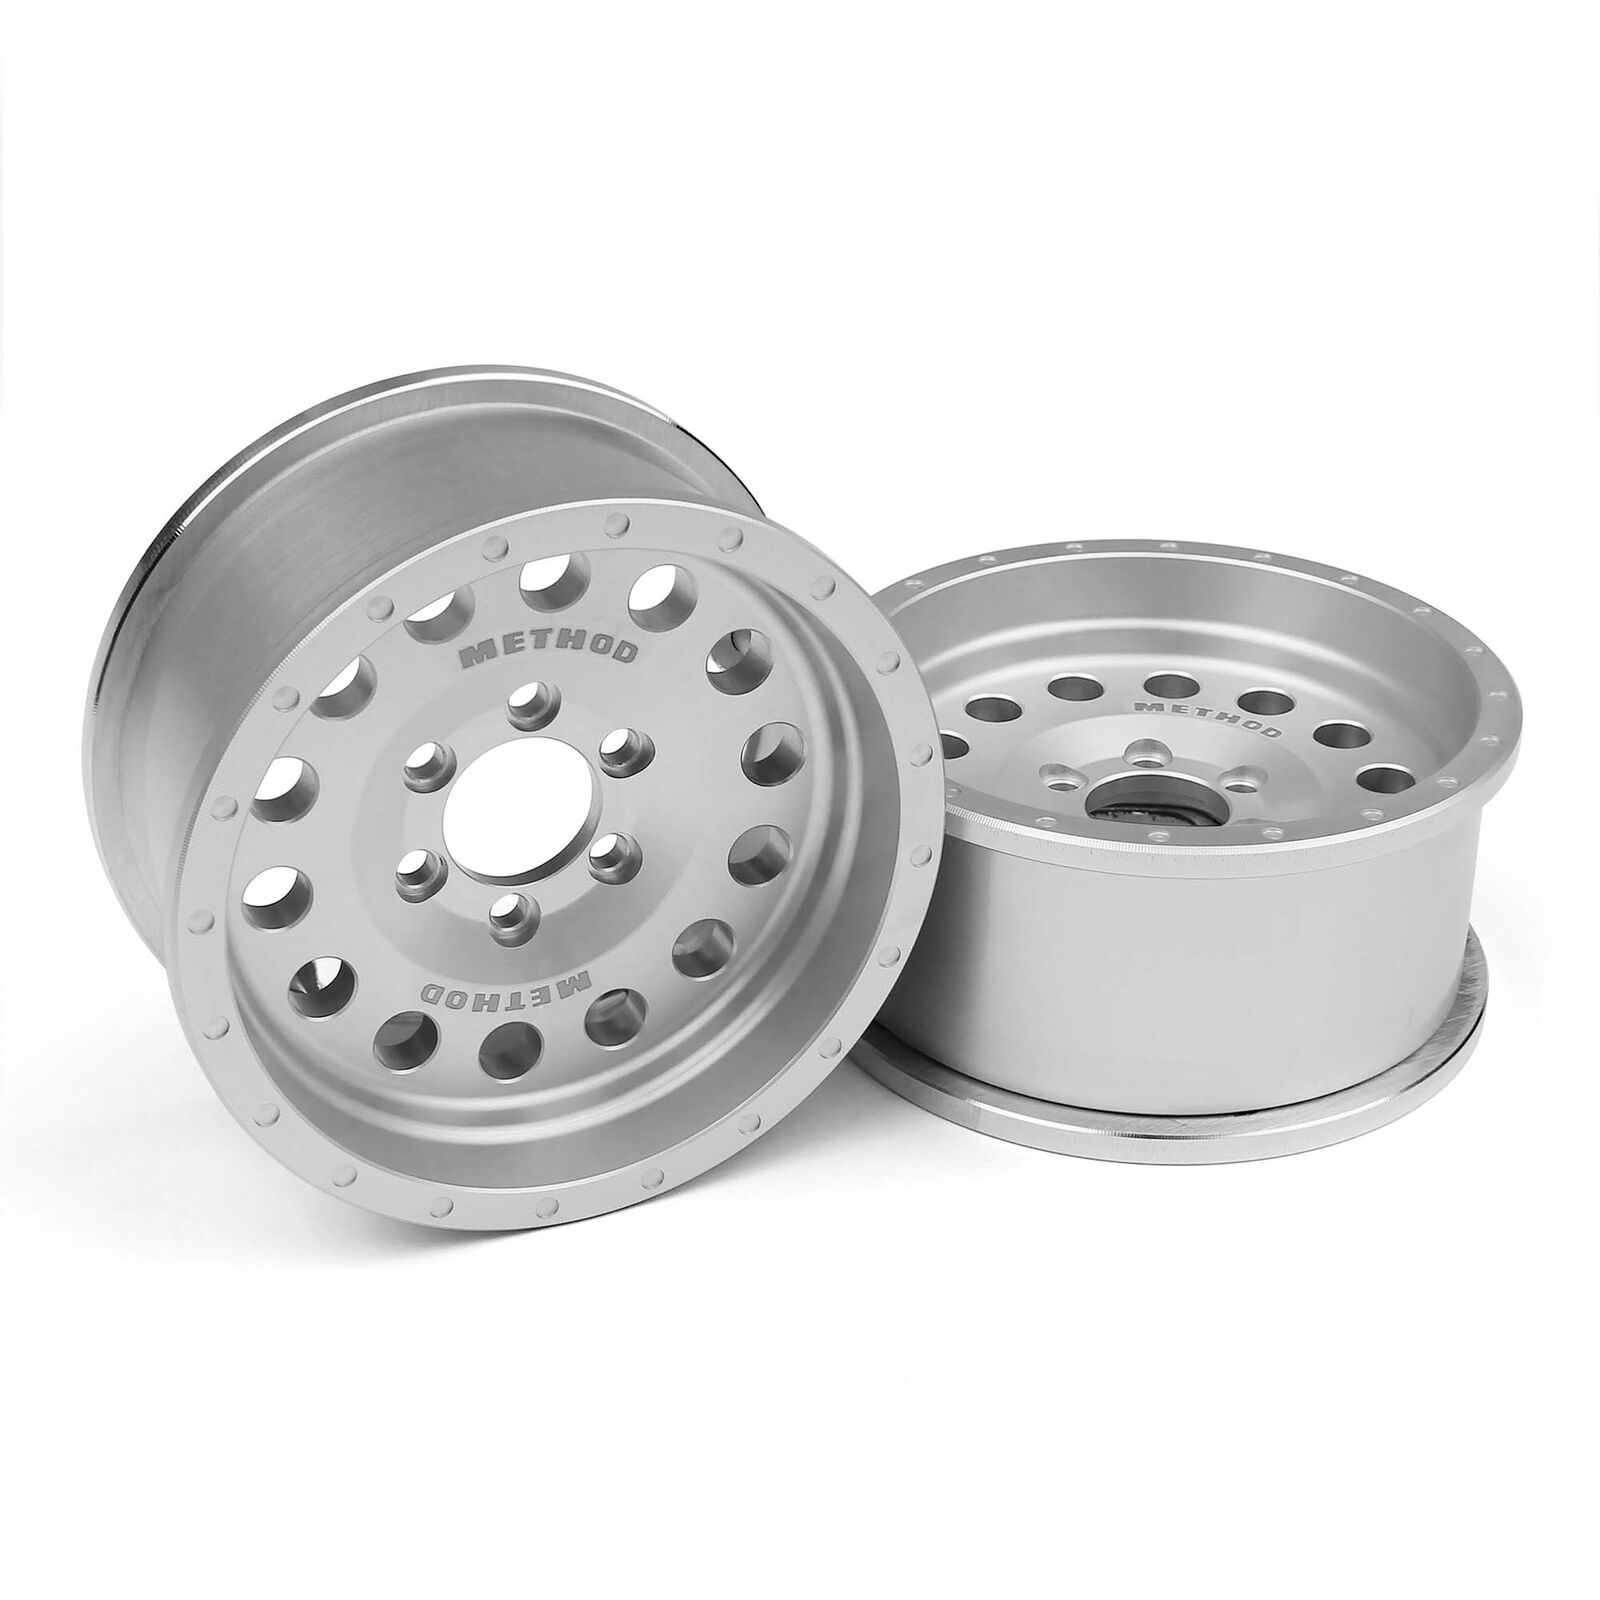 1/10 Incision Method MR307 1.9 Crawler Wheels, 12mm Hex, Clear Anodized (2)